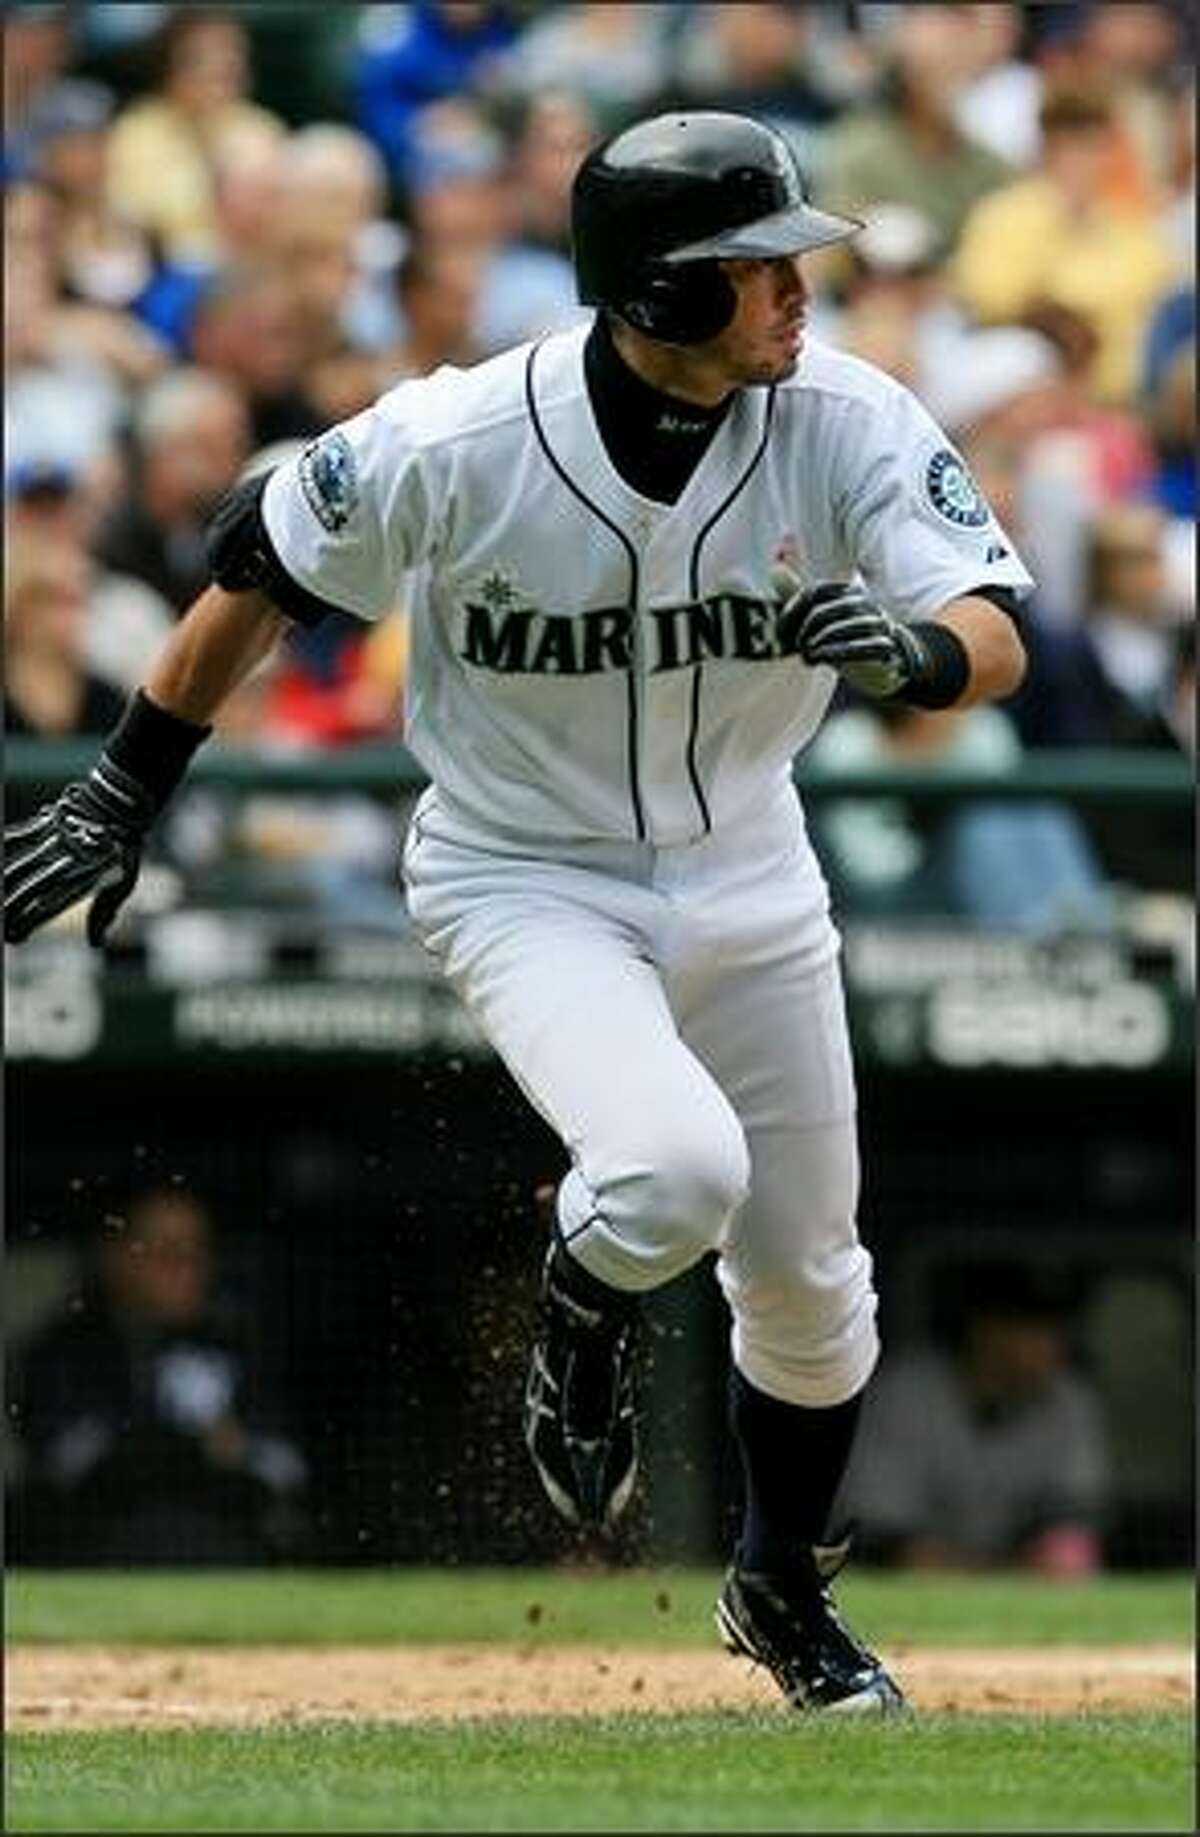 Seattle Mariners' Ichiro Suzuki hustles out a single, his first of two on the day, against New York Yankees' Andy Pettitte, during the 3rd inning. Ichiro later scored on a hit by Raul Ibanez.